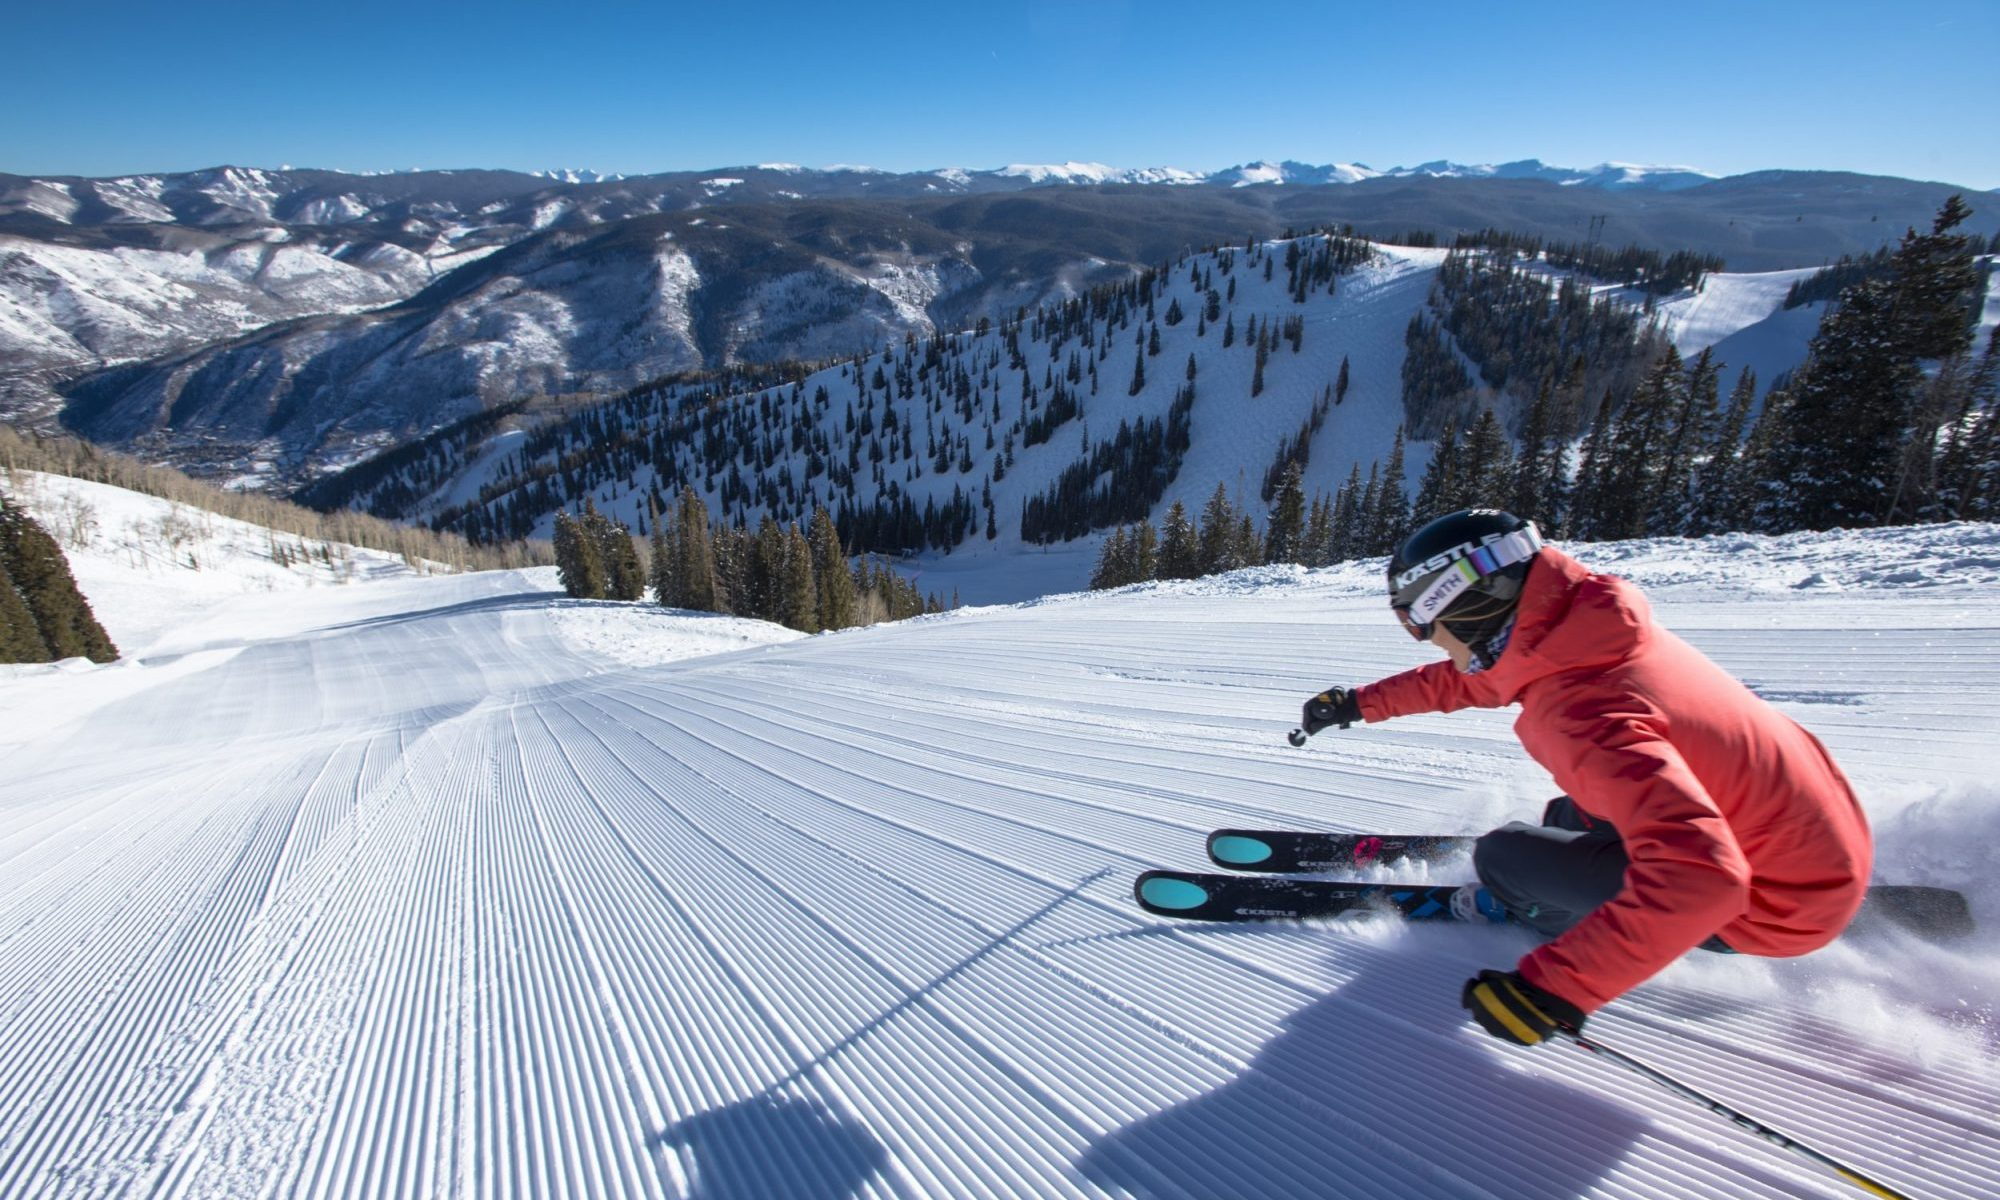 Darcy Conover skiing fresh corduroy down a steep snow covered groomed slope in the mountains at Aspen Mountain Ski Resort in Colorado - Aspen Mountain Announces Bonus Weekend June 1-2, 2019. Photo Aspen Snowmass.